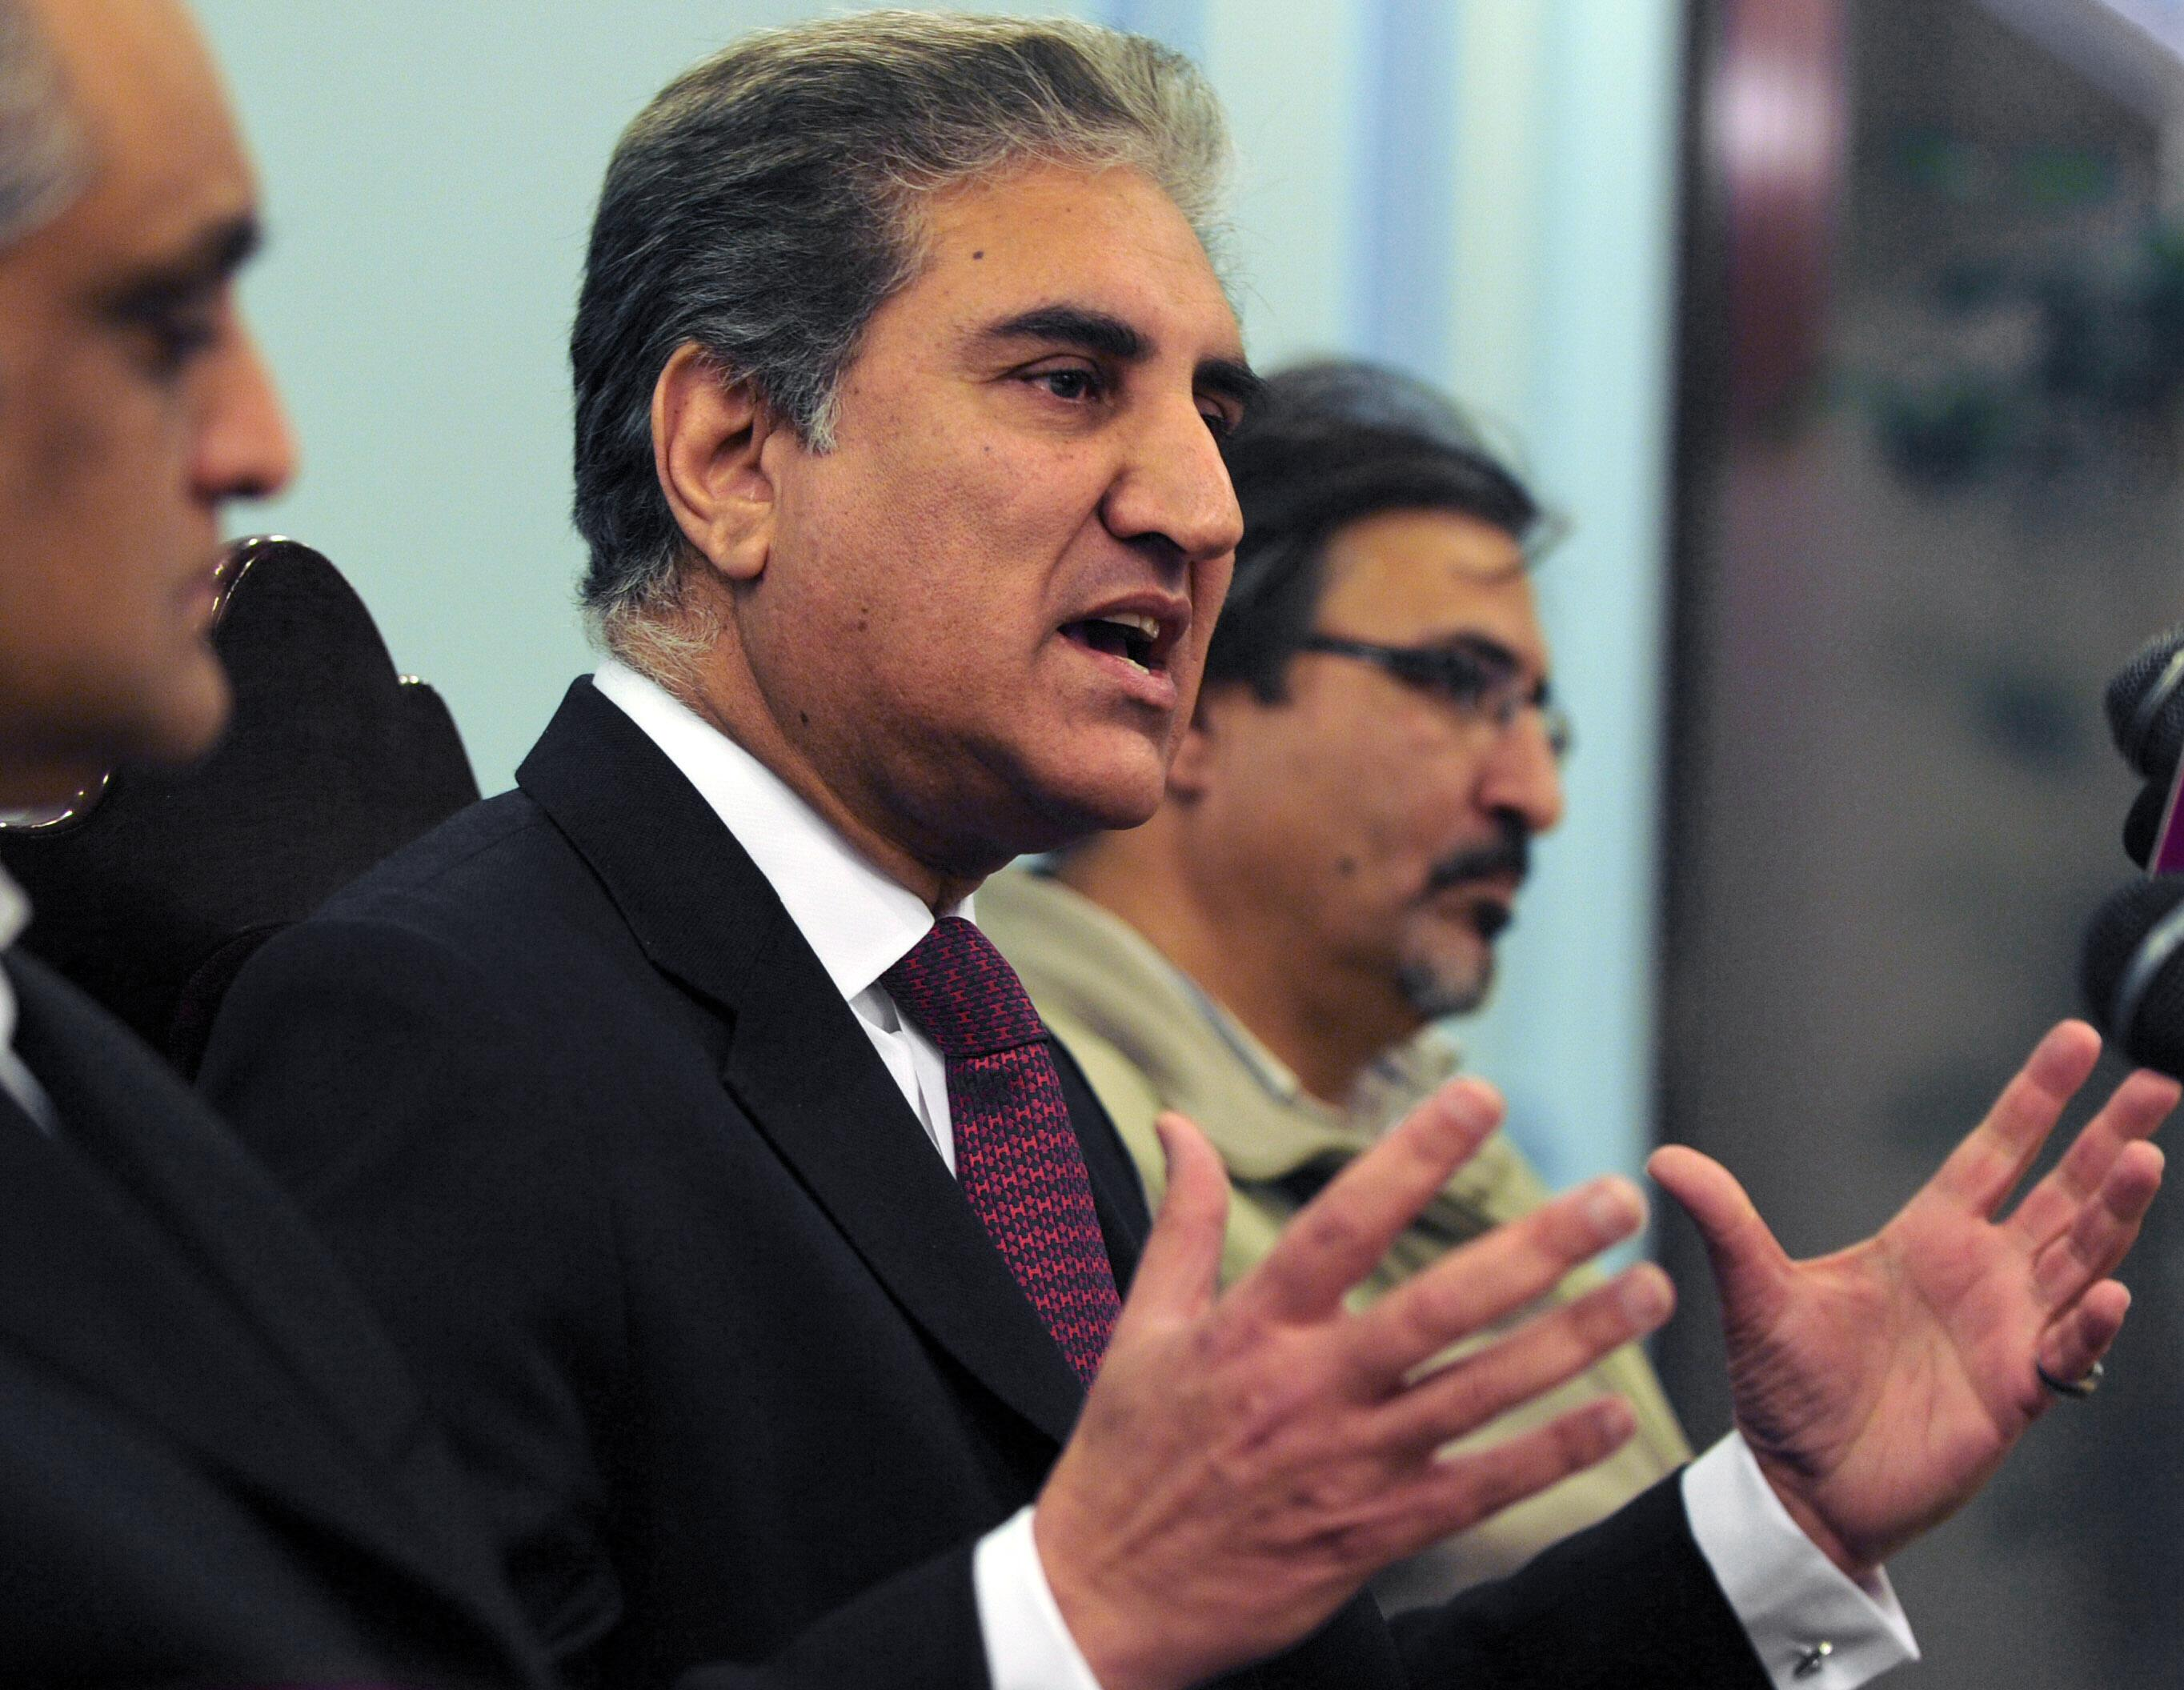 shah-mehmood-qureshi-afp-2-2-2-2-2-2-2-2-2-2-2-2-3-2-2-2-2-2-2-2-3